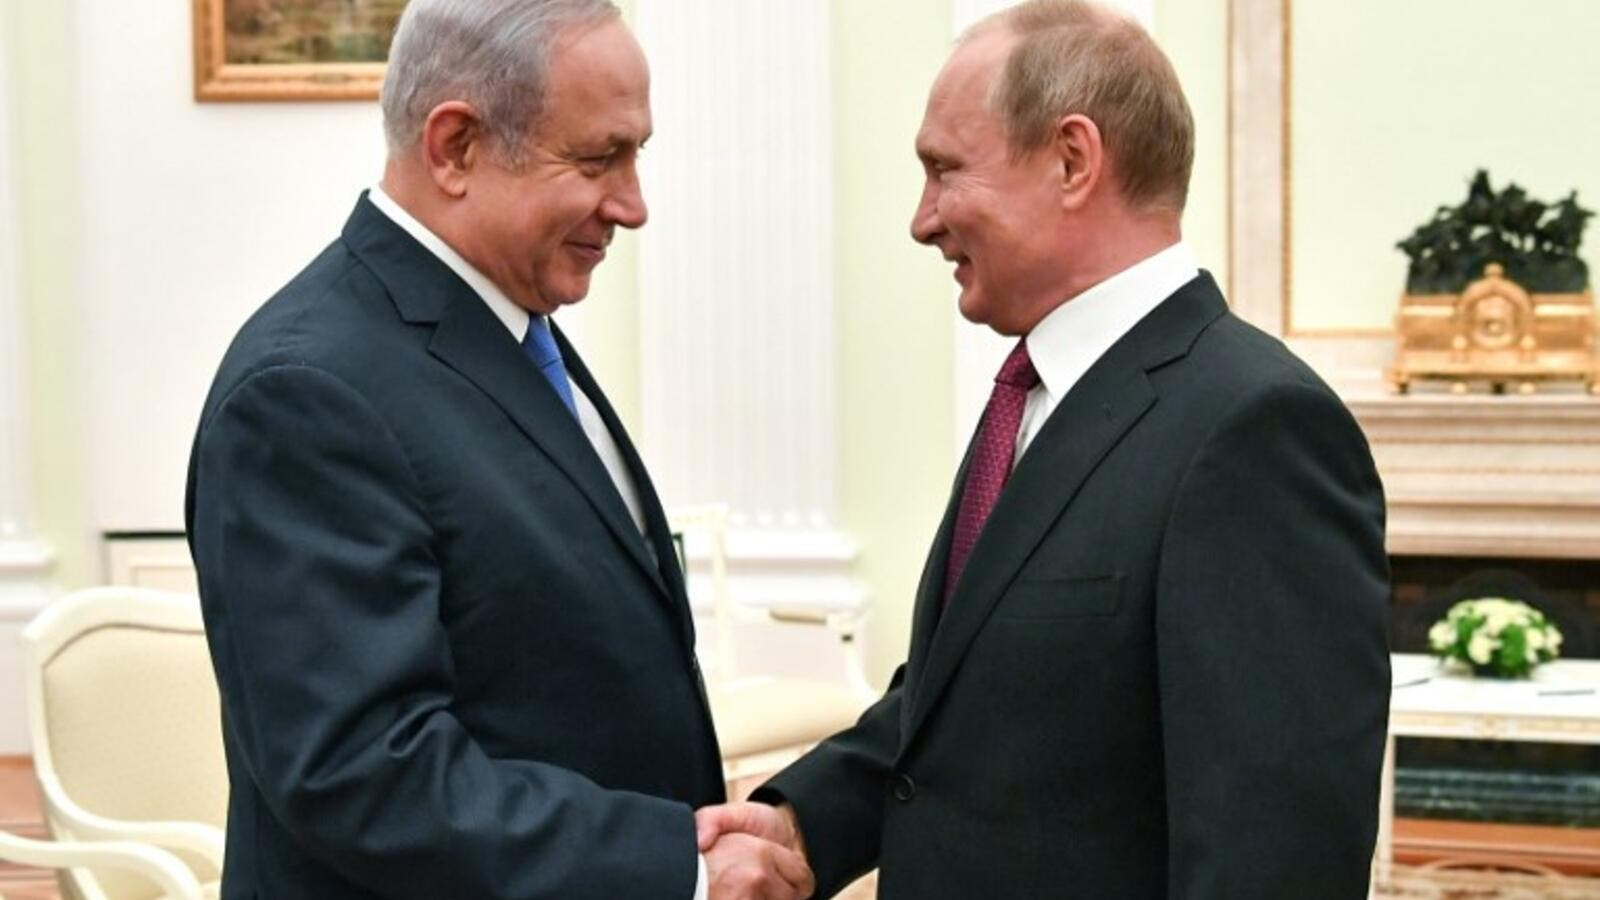 Russian President Vladimir Putin (R) shakes hands with Israeli Prime Minister Benjamin Netanyahu during their meeting at the Kremlin in Moscow. (AFP/File)